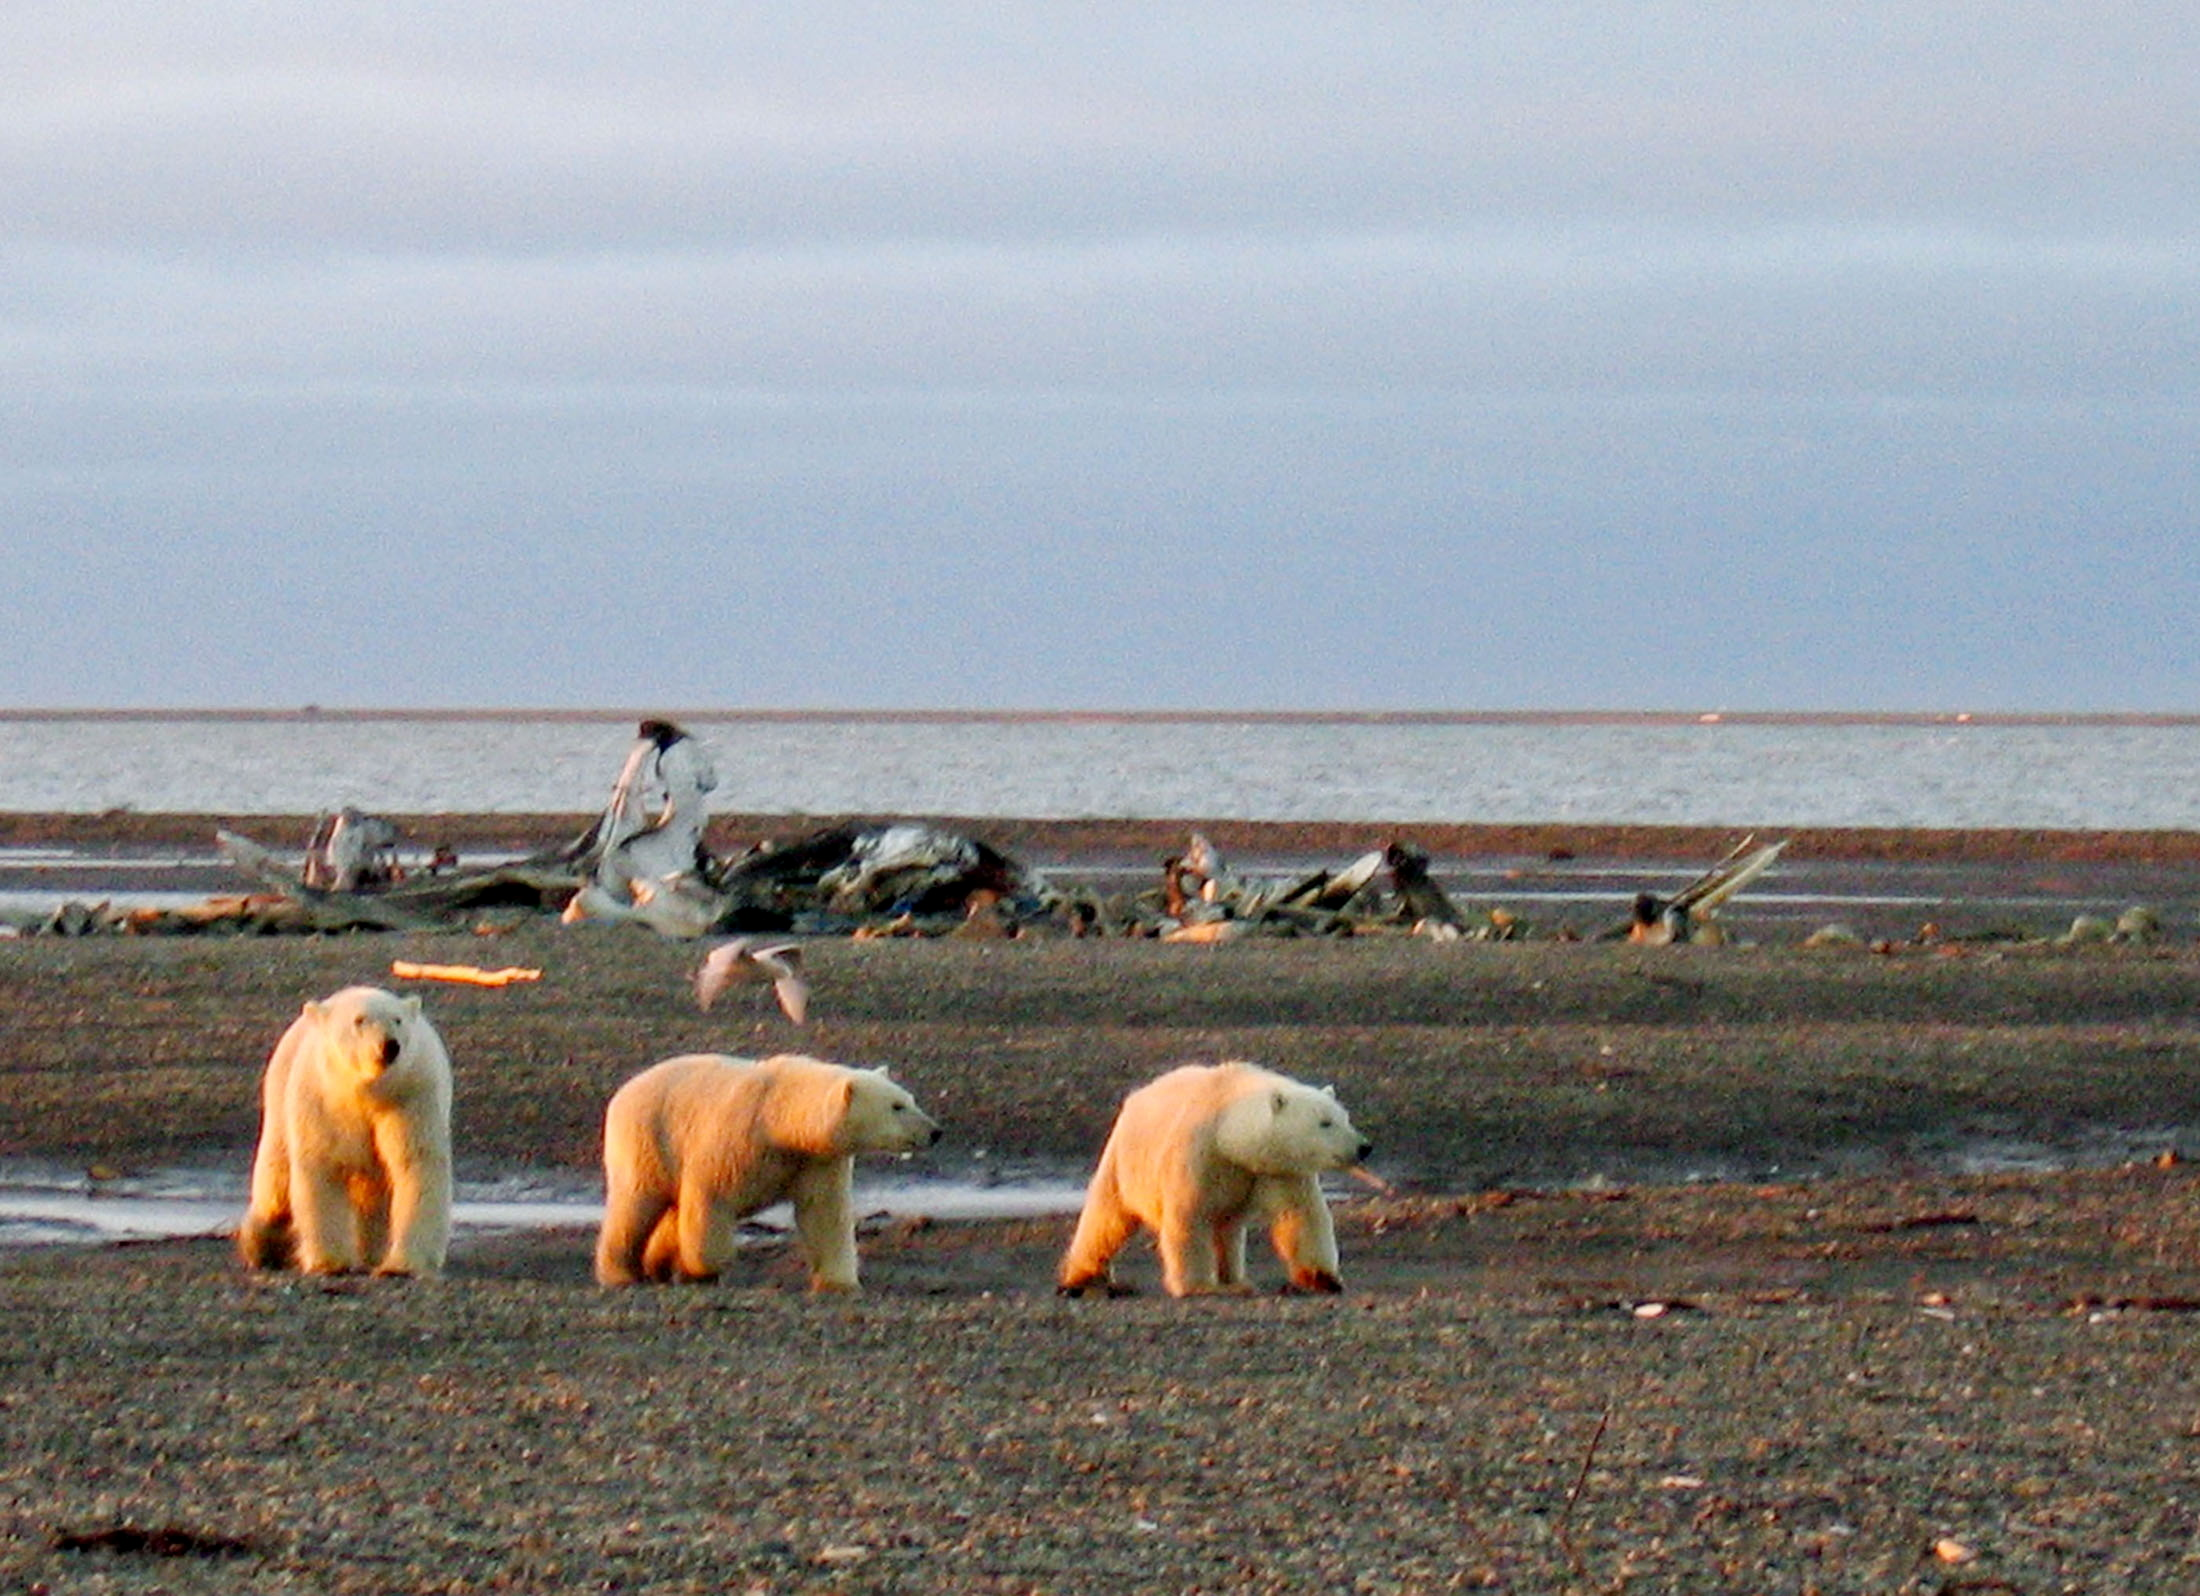 Three polar bears are seen on the Beaufort Sea coast within the 1002 Area of the Arctic National Wildlife Refuge in this undated handout photo provided by the U.S. Fish and Wildlife Service Alaska Image Library on December 21, 2005. REUTERS/HANDOUT/U.S. Fish and Wildlife Service Alaska Image Library